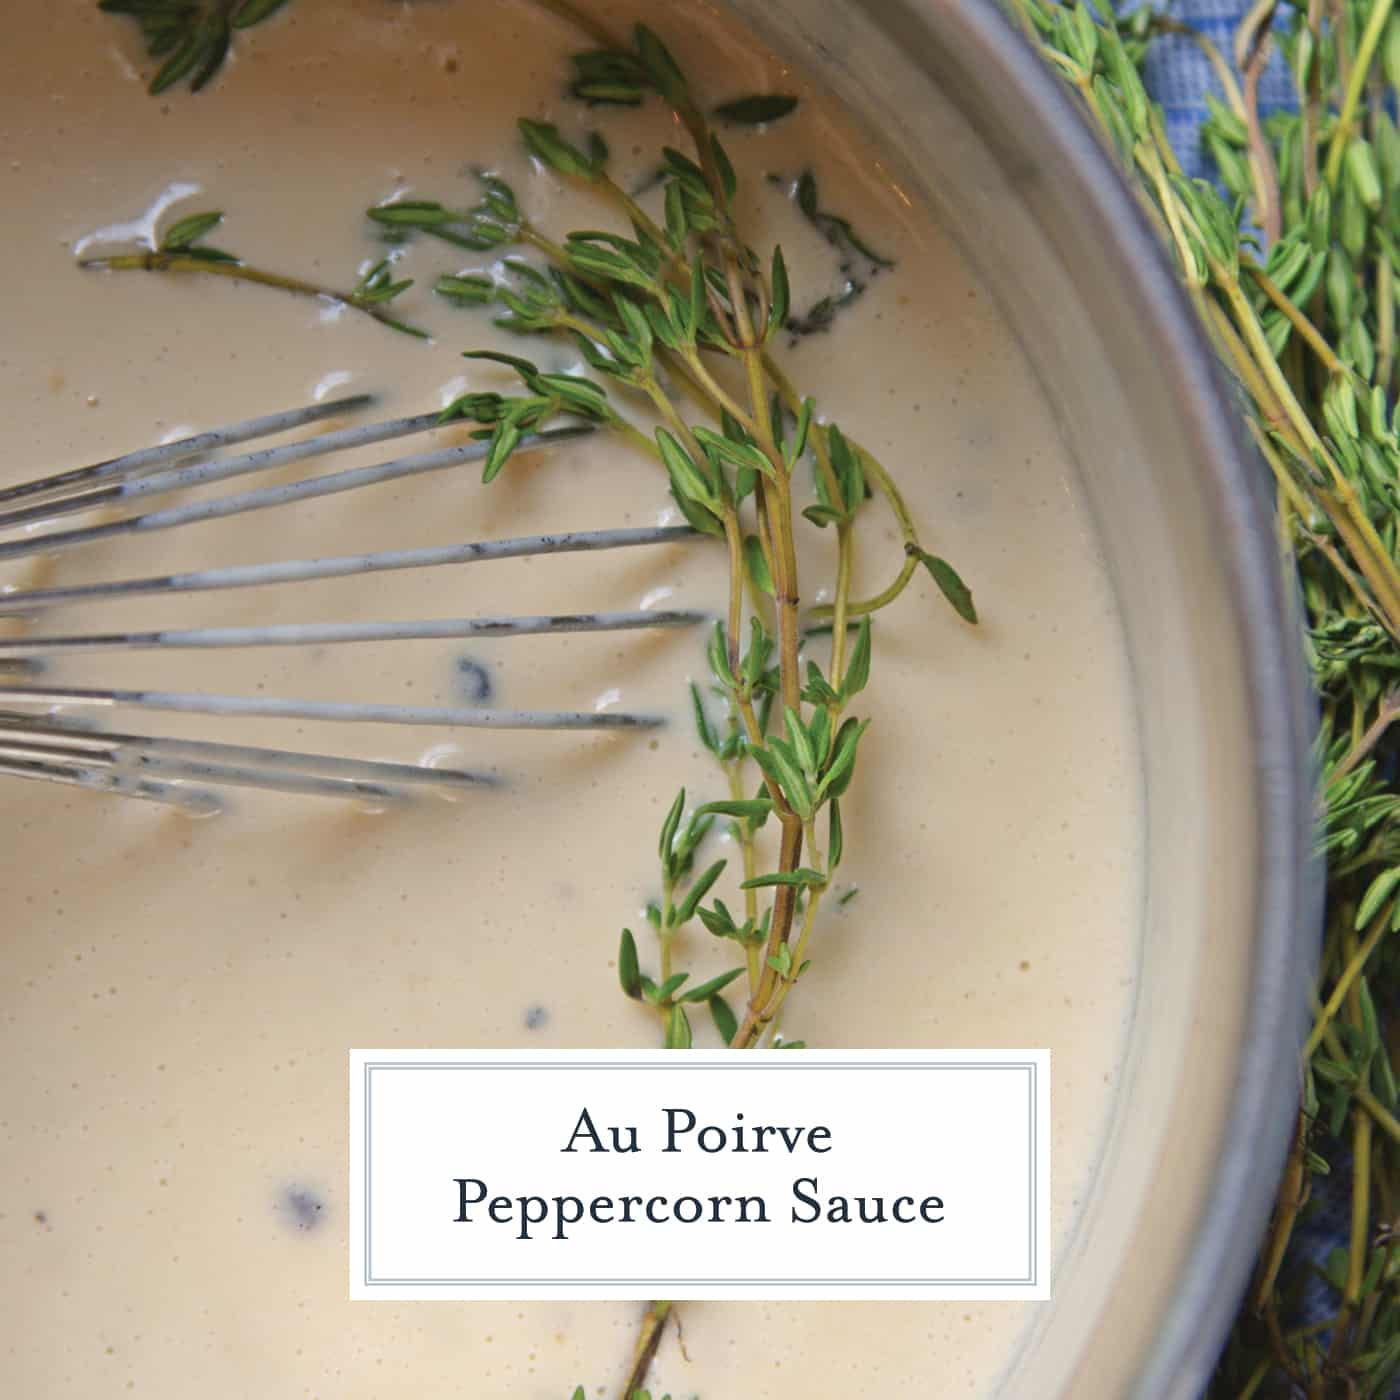 Au Poivre Peppercorn Sauce for steak can also be used for chicken or vegetables. An easy, creamy beef sauce spiked with peppercorns and Dijon mustard. #steaksauce #aupoivresauce #peppercornsauce www.savoryexperiments.com